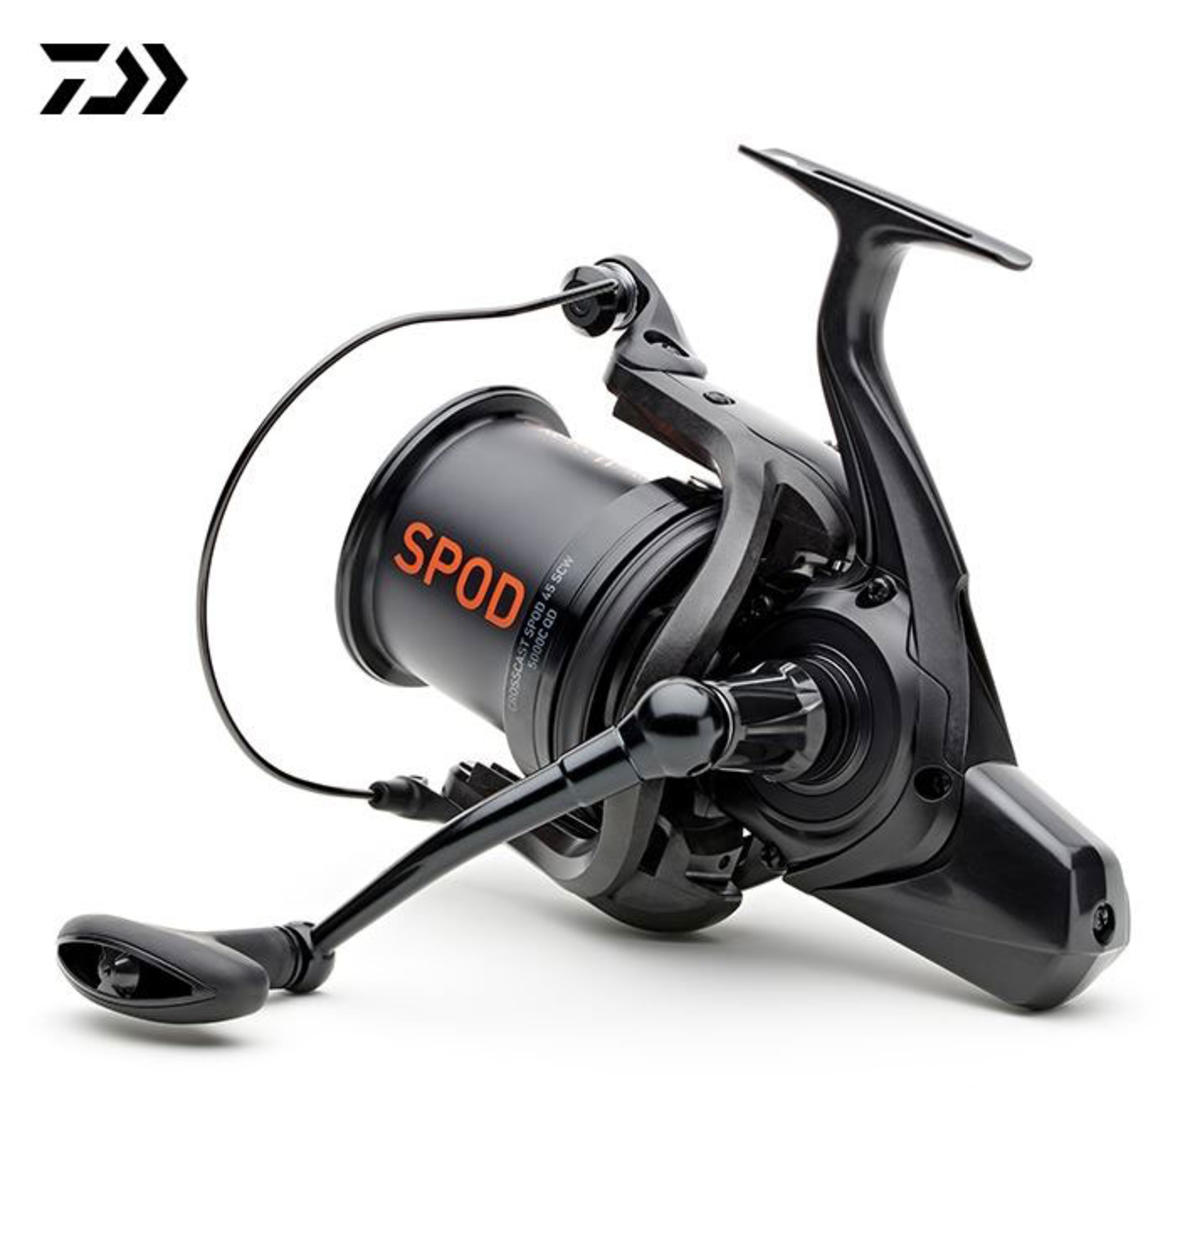 New Daiwa 20 Crosscast 45 SCW QD Spod 5000C QD Carp Fishing Reel